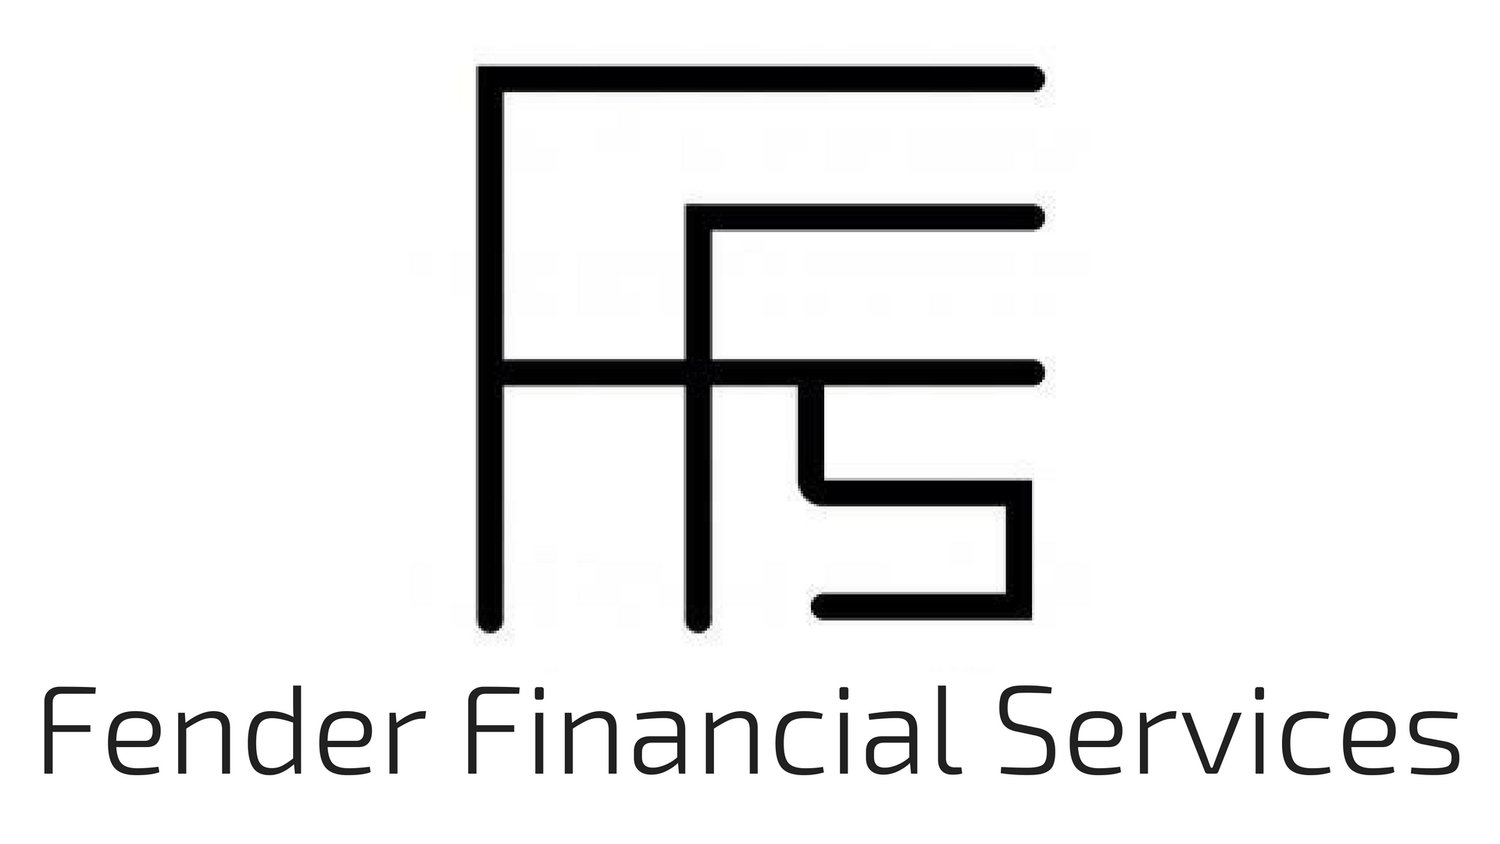 Fender Financial Services